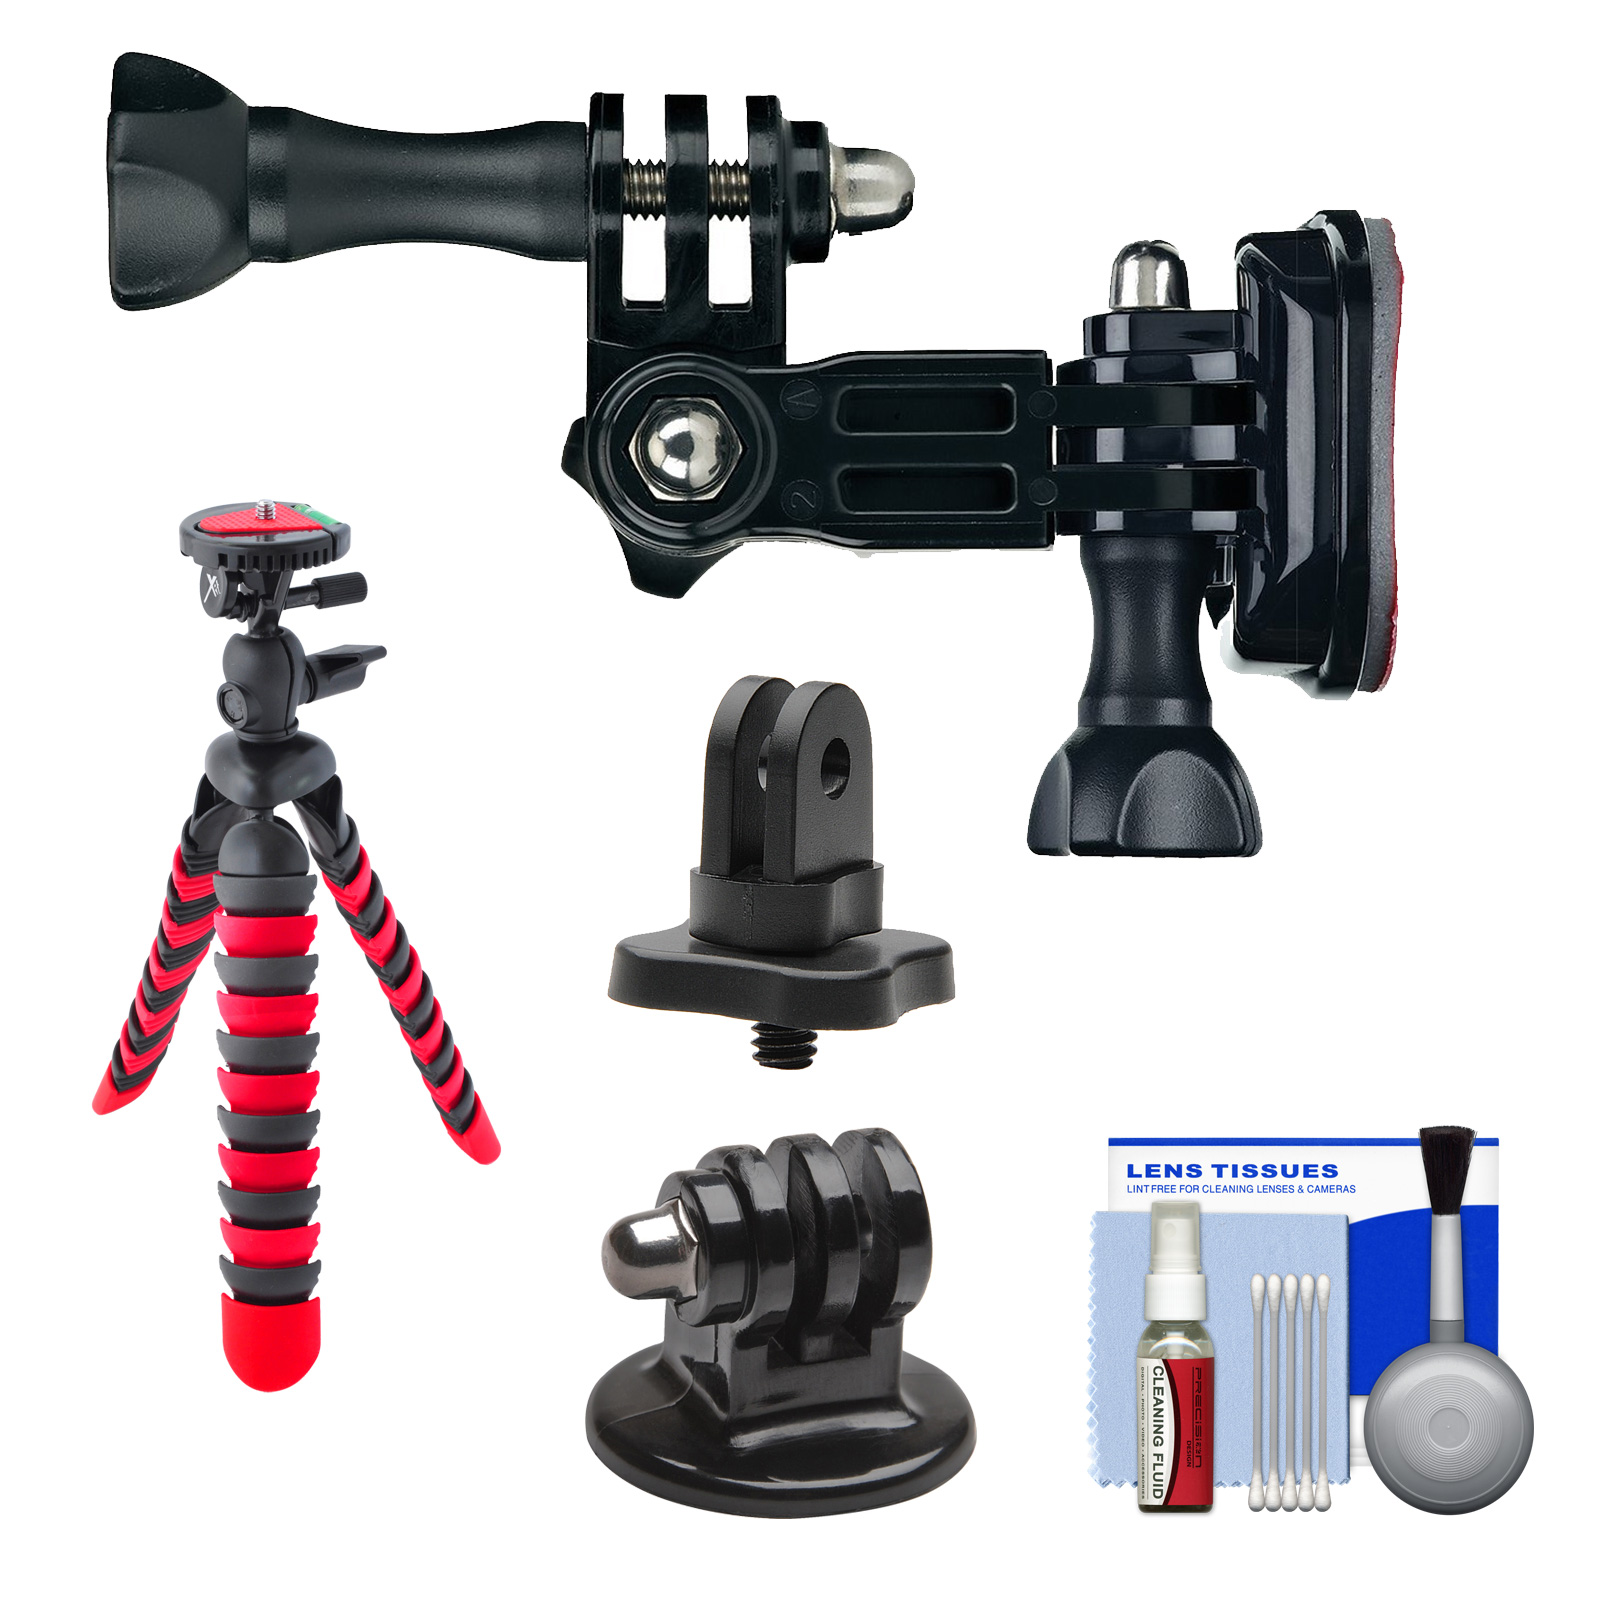 "PRO-mounts PMGP18 Side Helmet Mount with 1/4"" Thread Adapter + Flex Tripod + Kit for GoPro HERO, Sony Action Cam, Drift, Veho Muvi, and most Cameras"